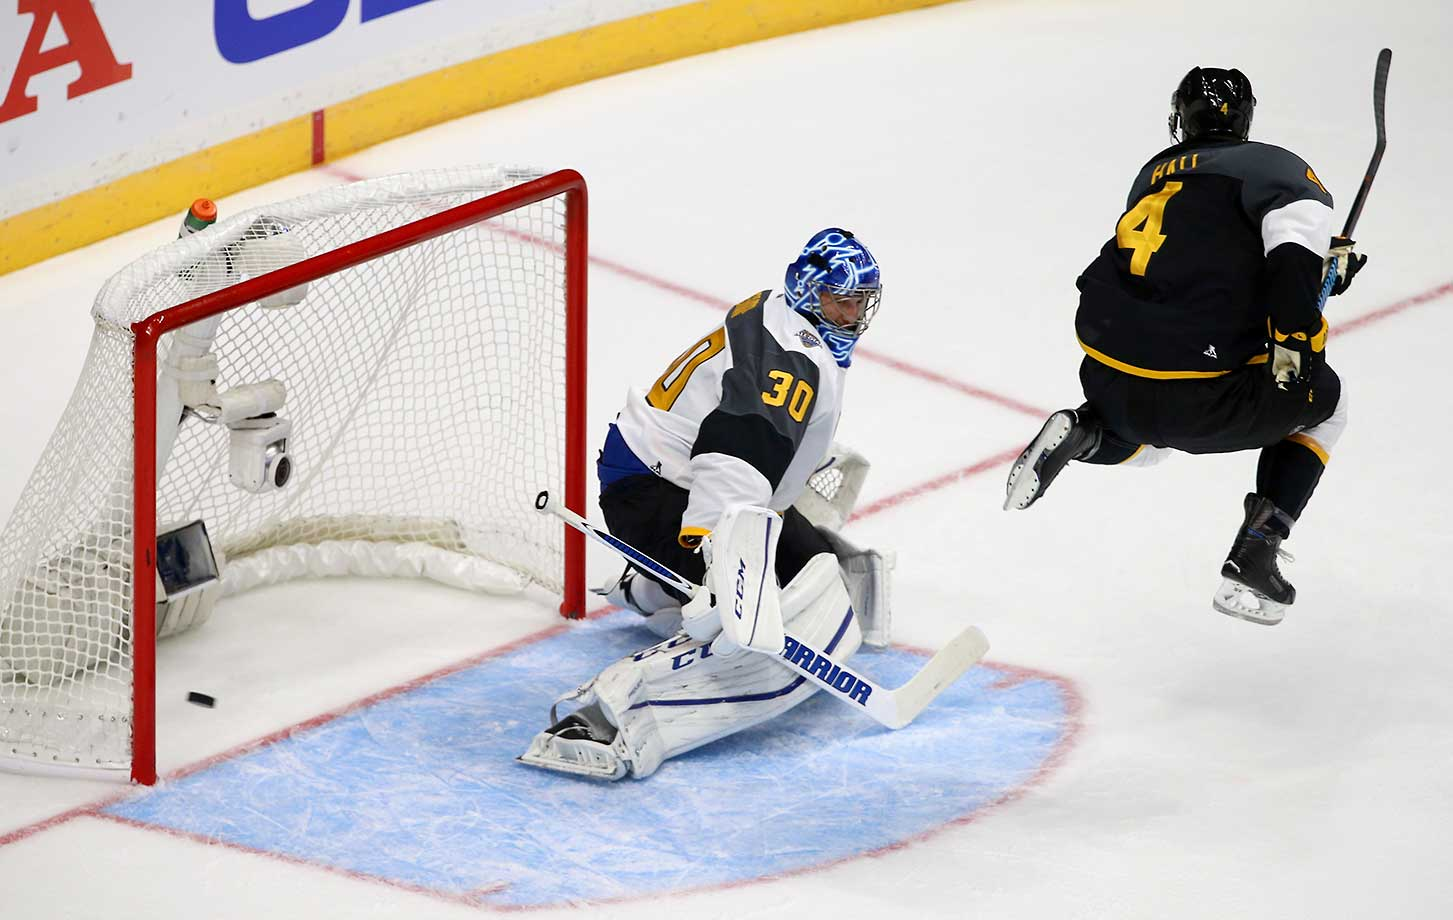 Goaltender Ben Bishop of the Tampa Bay Lightning defends his net against Taylor Hall of the Edmonton Oilers during the 2016 Honda NHL All-Star Final Game between the Eastern and the Western Conference in Nashville, Tenn.